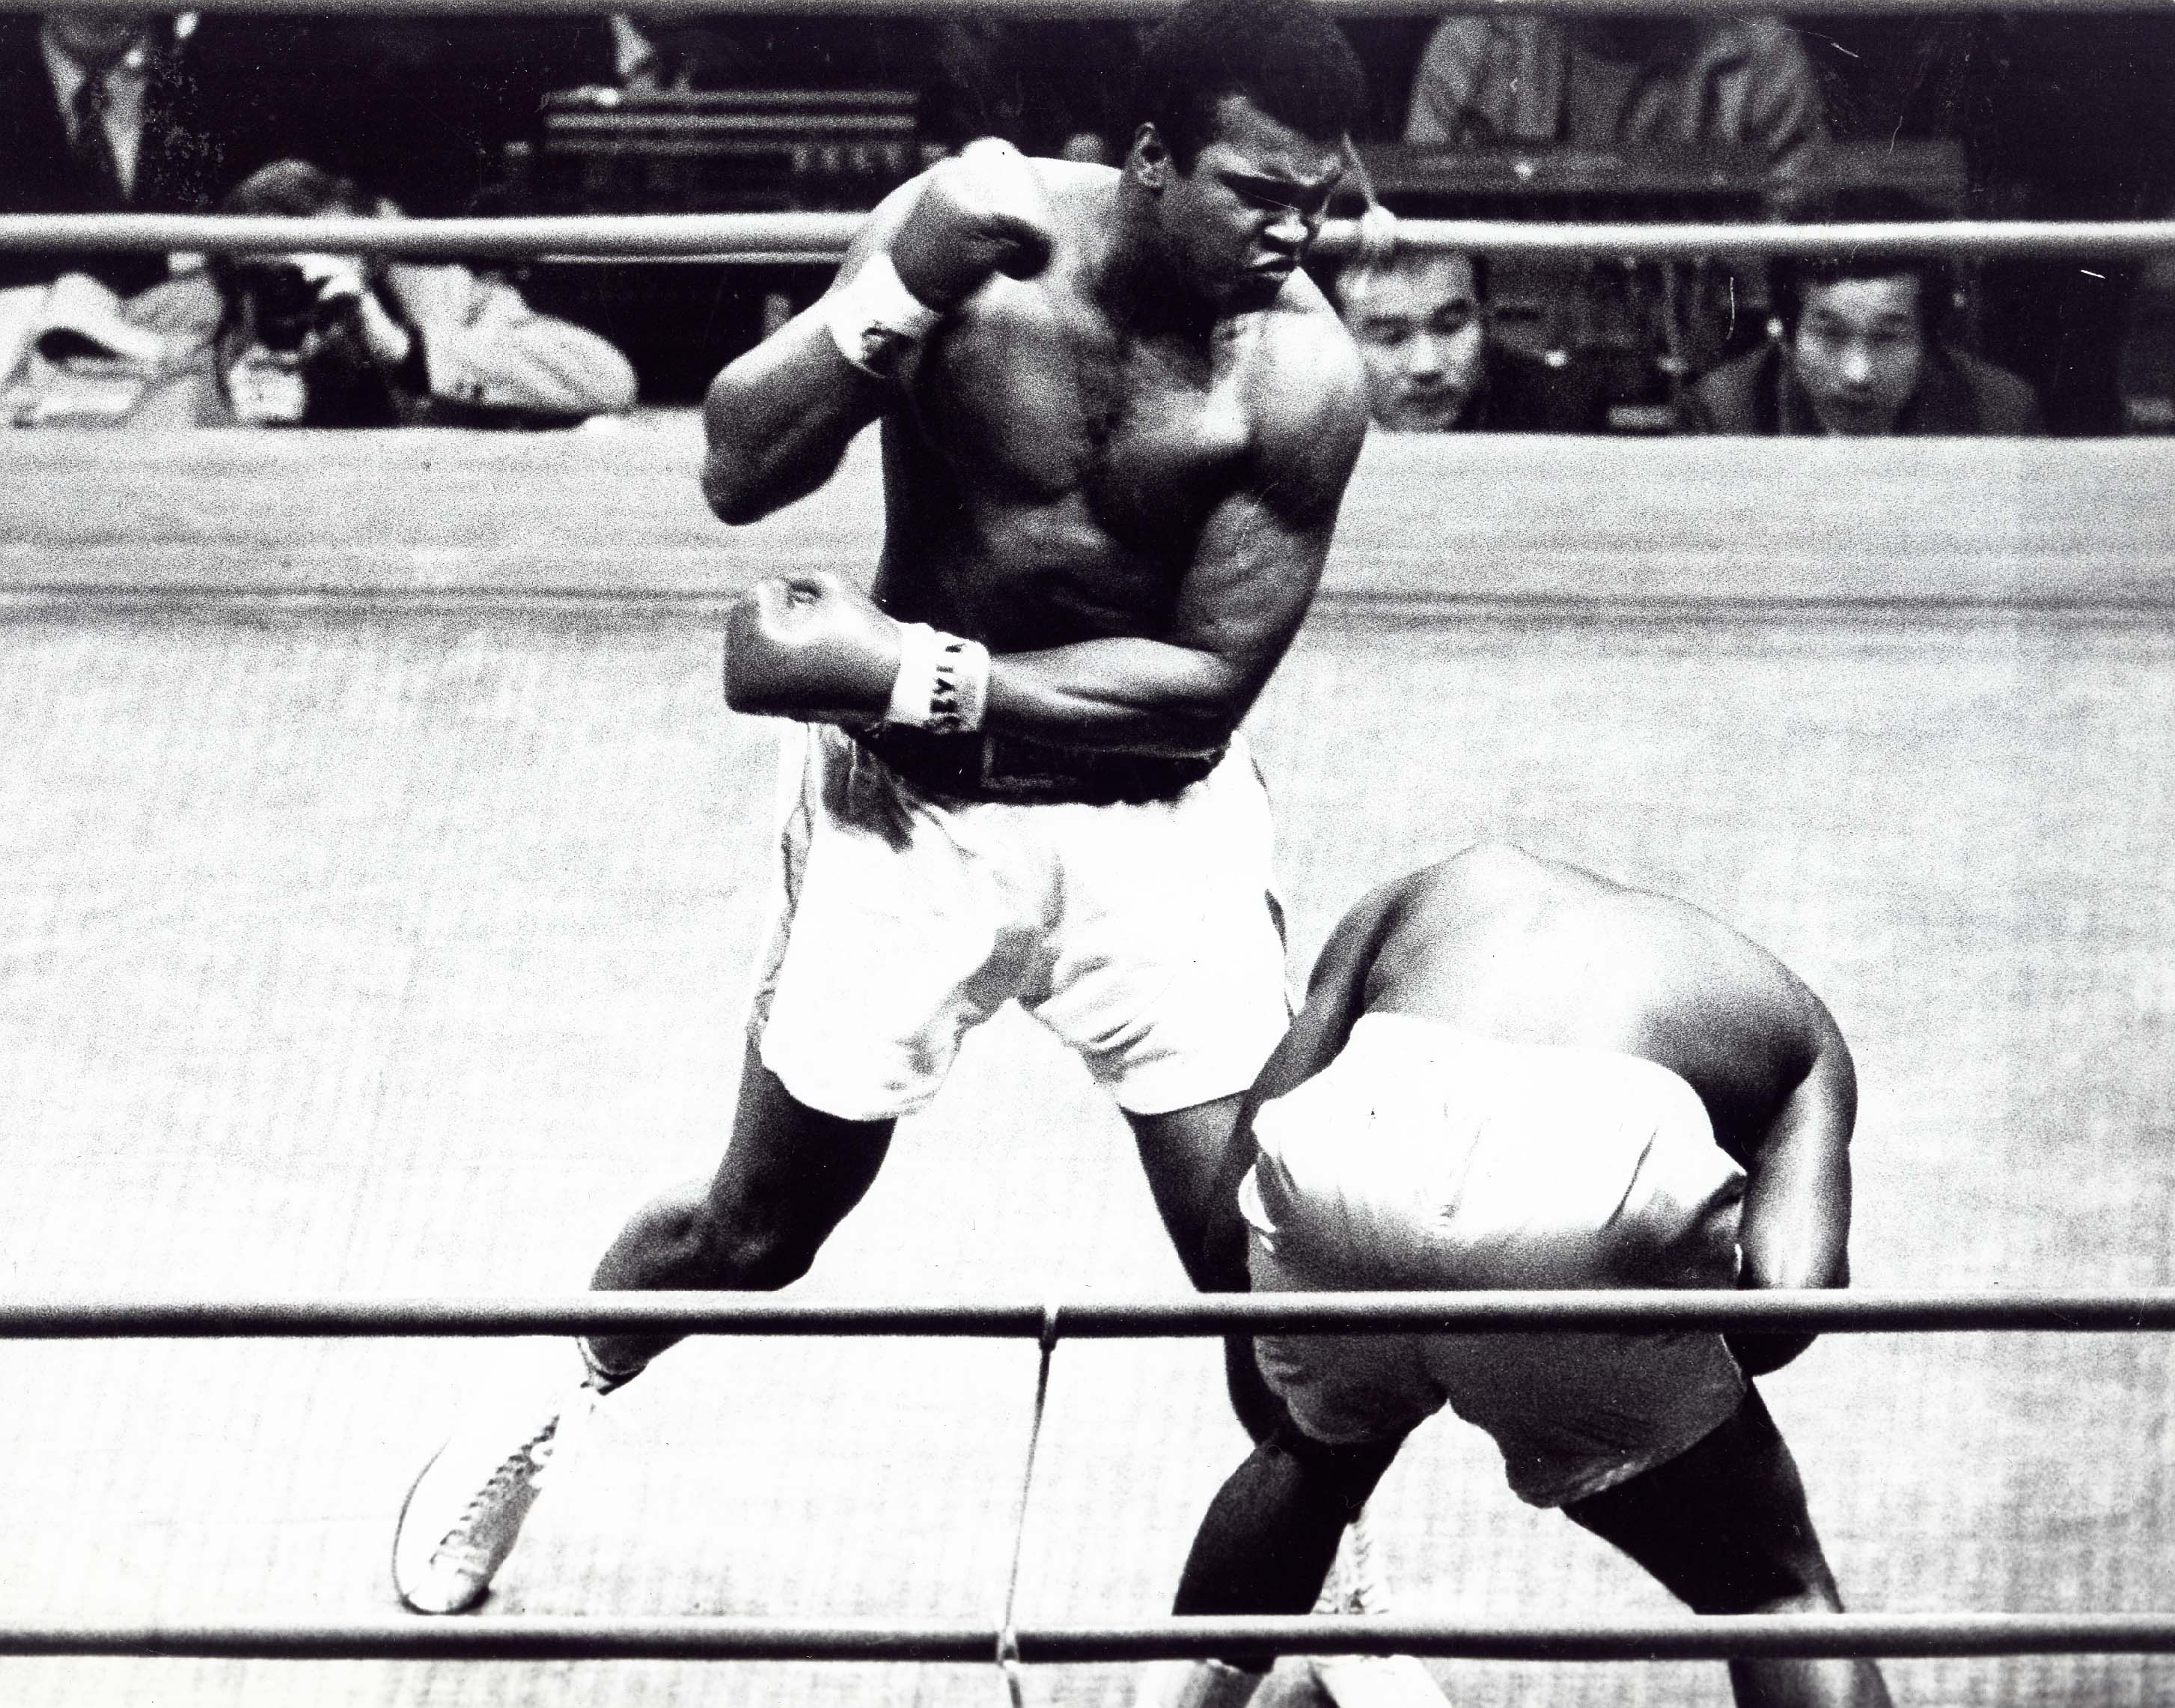 Nov. 30, 1972 - MUHAMMAD ALI wins match with Mac Foster. 1972., Image: 109630873, License: Rights-managed, Restrictions: , Model Release: no, Credit line: Profimedia, Zuma Press - Entertaiment